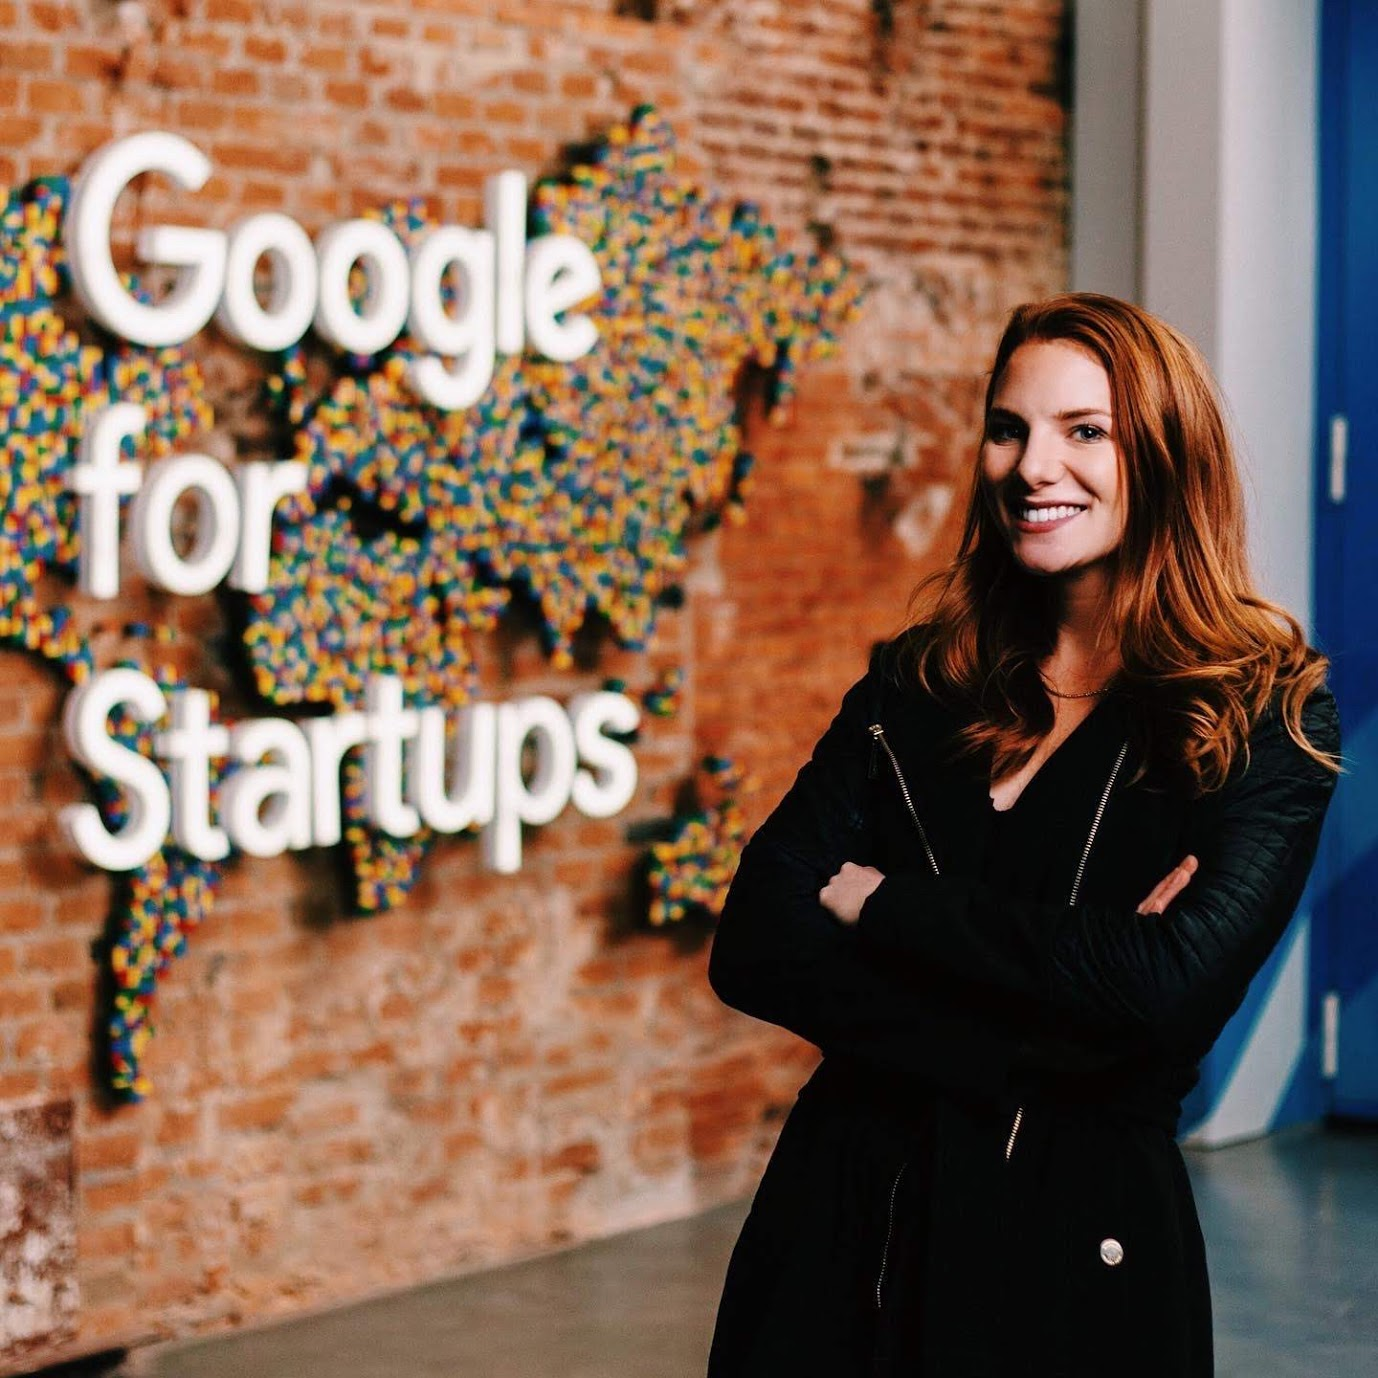 """Photo of Hannah Frankl standing in front of a brick wall with a colorful map of the world and writing that says """"Google for Startups"""". Hannah is a white woman with long read hair wearing a black shirt and jacket. She is smiling and posing with her arms crossed."""